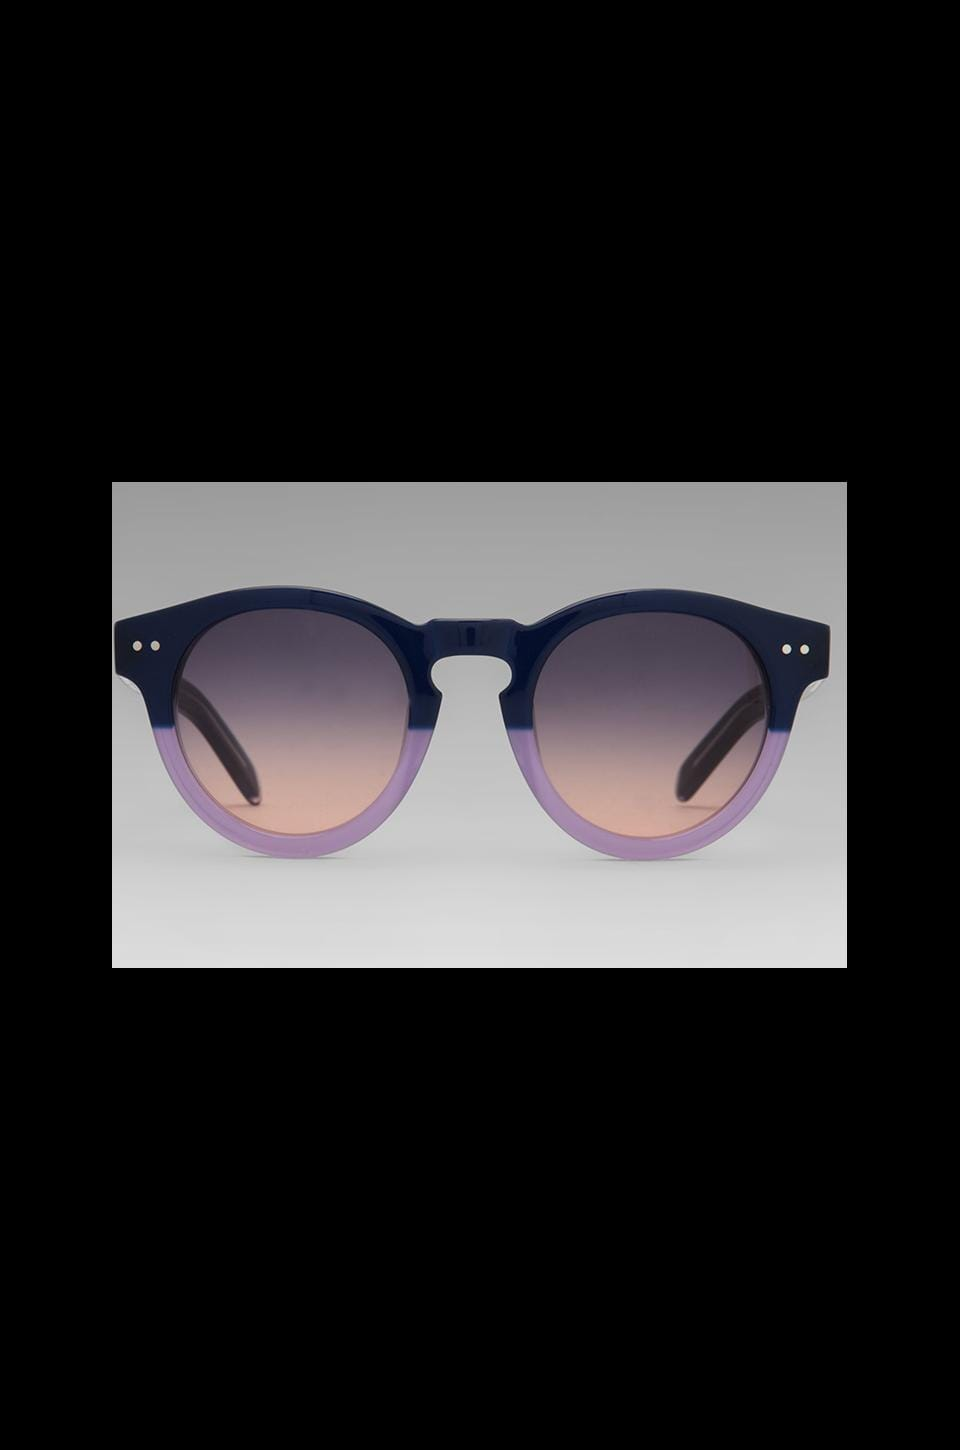 House of Harlow Carmen Sunglasses in Lavender